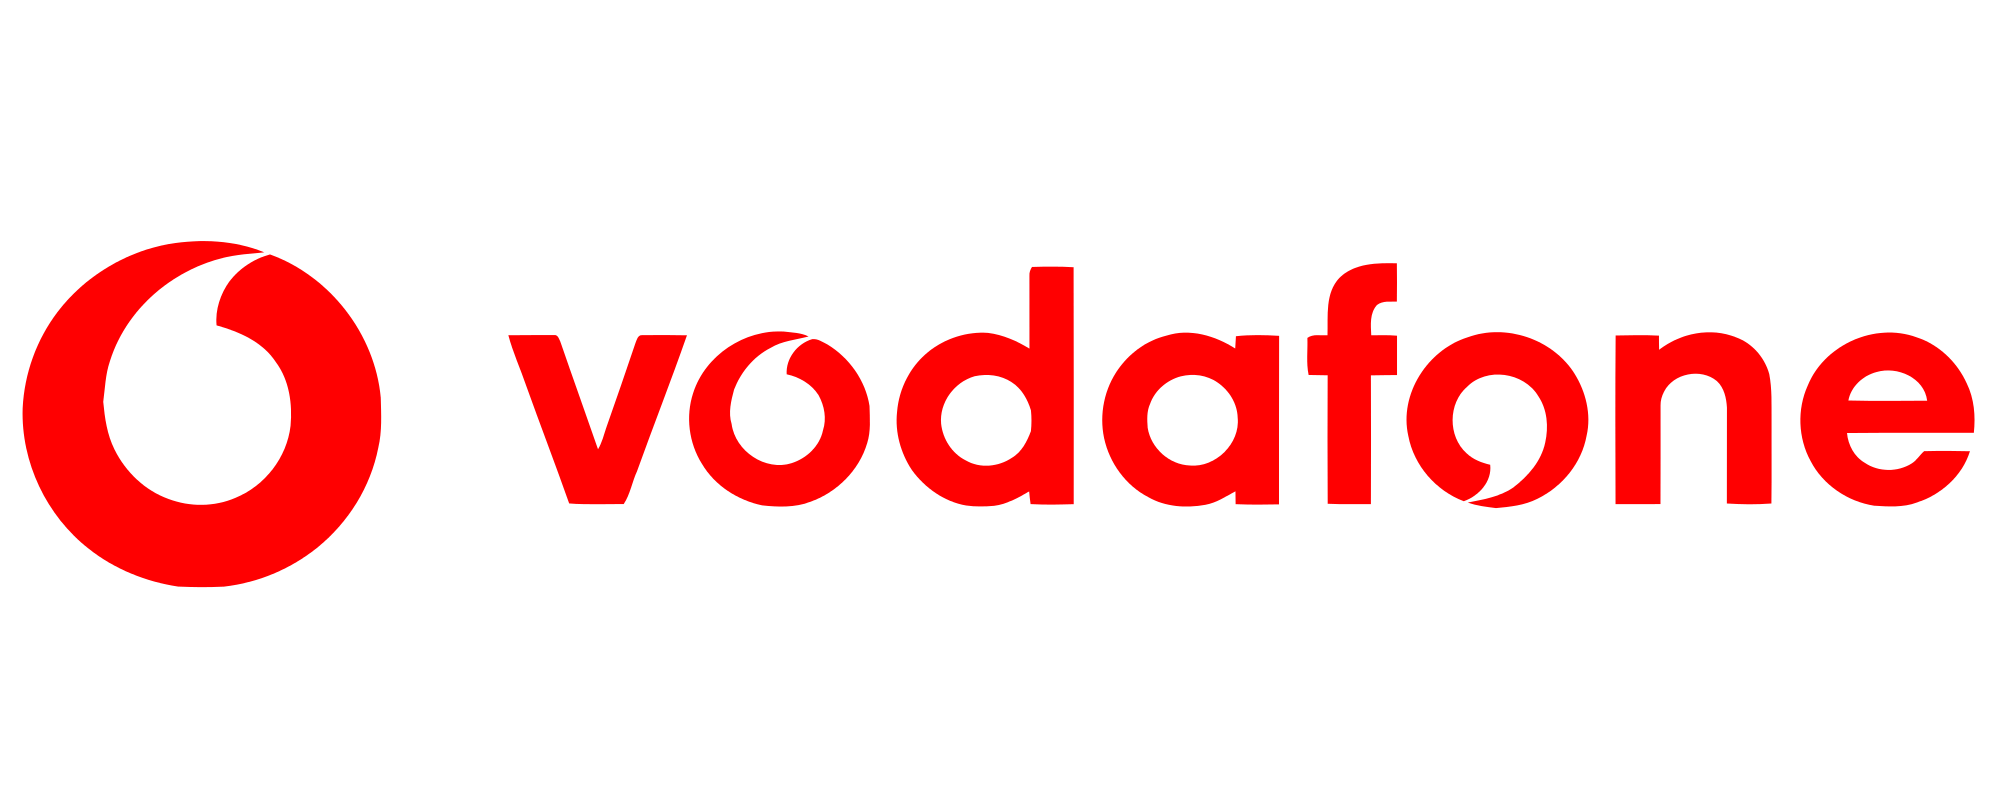 Vodafone PNG - 103835